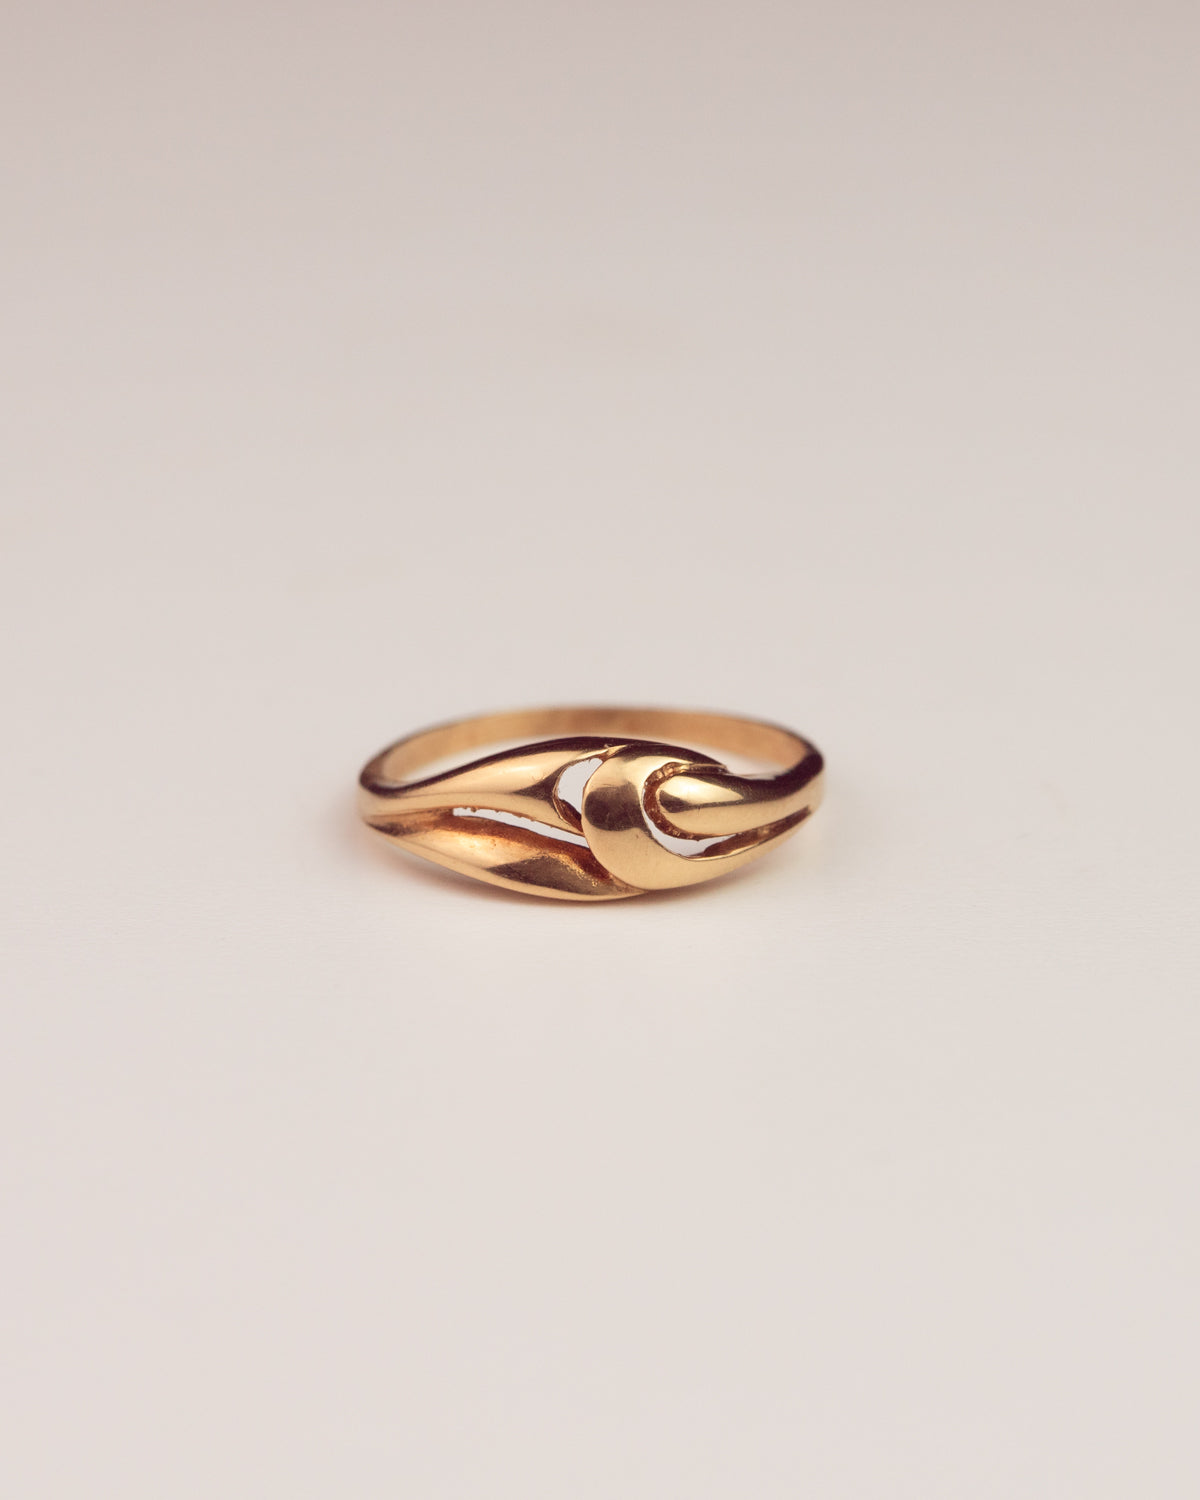 Image of Honora Exclusive Vintage 18ct Gold Swirl Openwork Ring